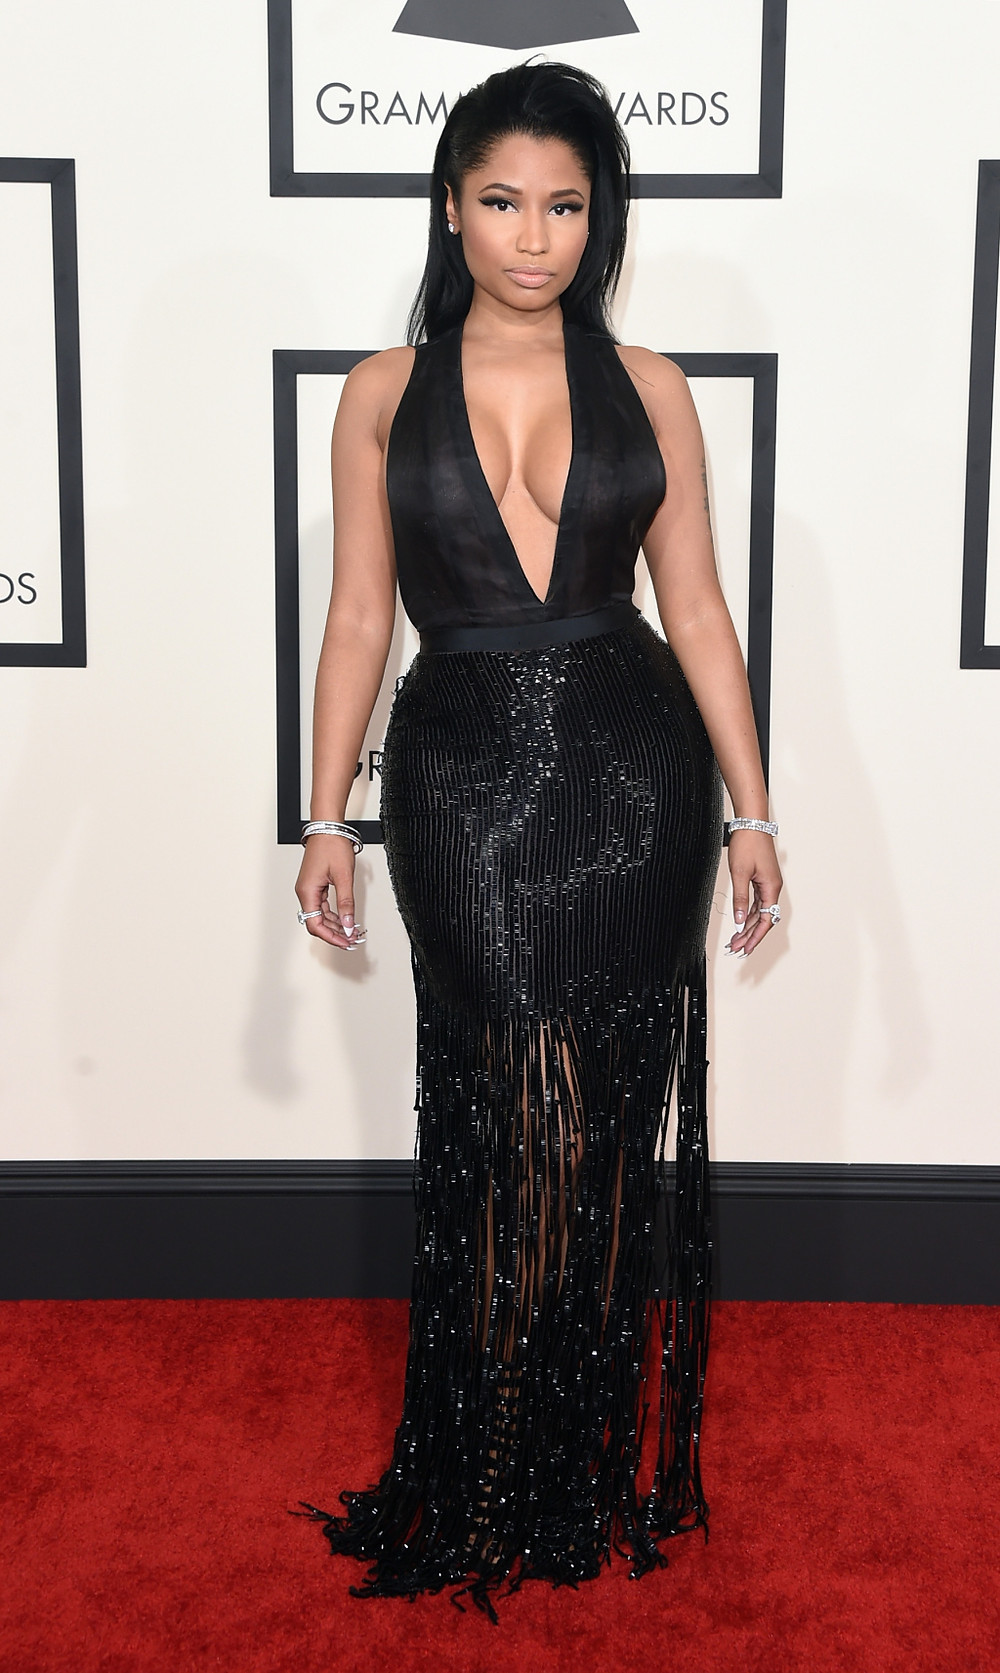 Nicki Minaj at the 57th Grammy Awards (photo: globalgrind.com)